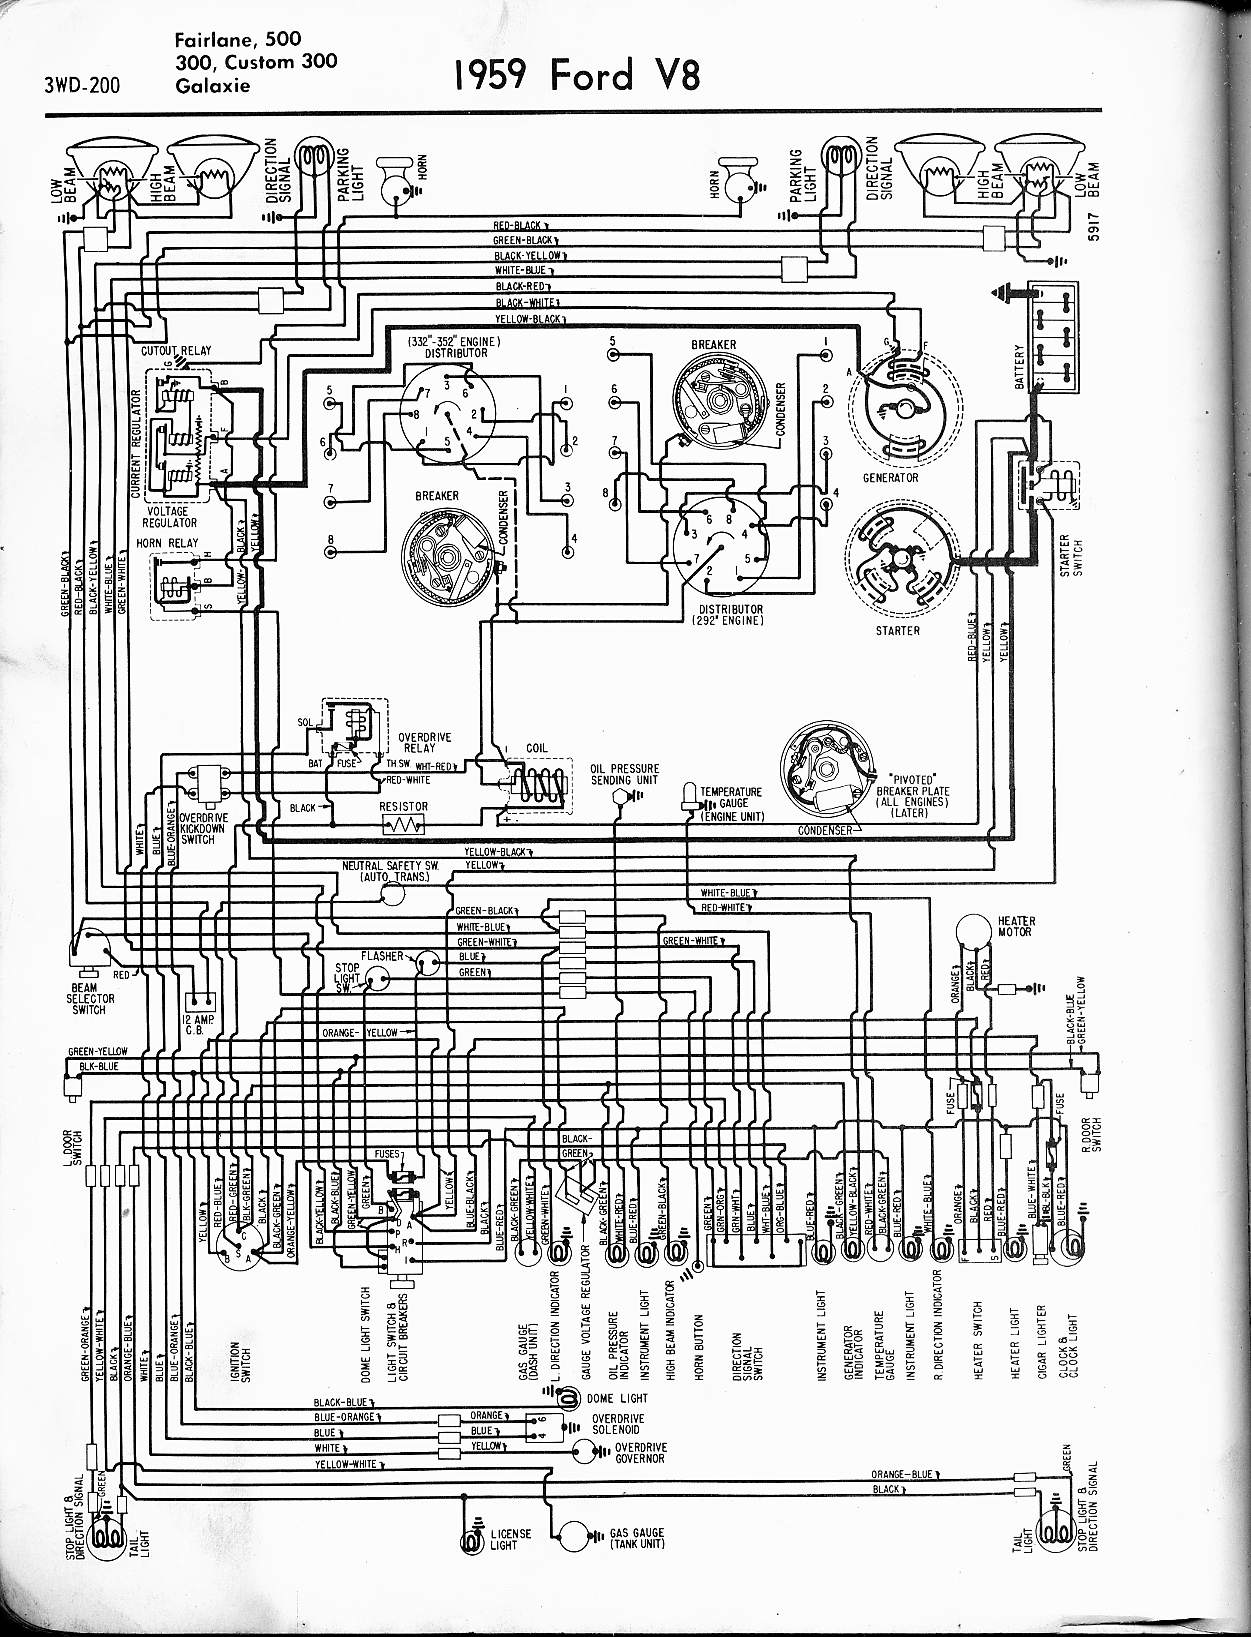 1957 Ford Wiring Diagram Schemes 1930 Plymouth 57 65 Diagrams Distributor